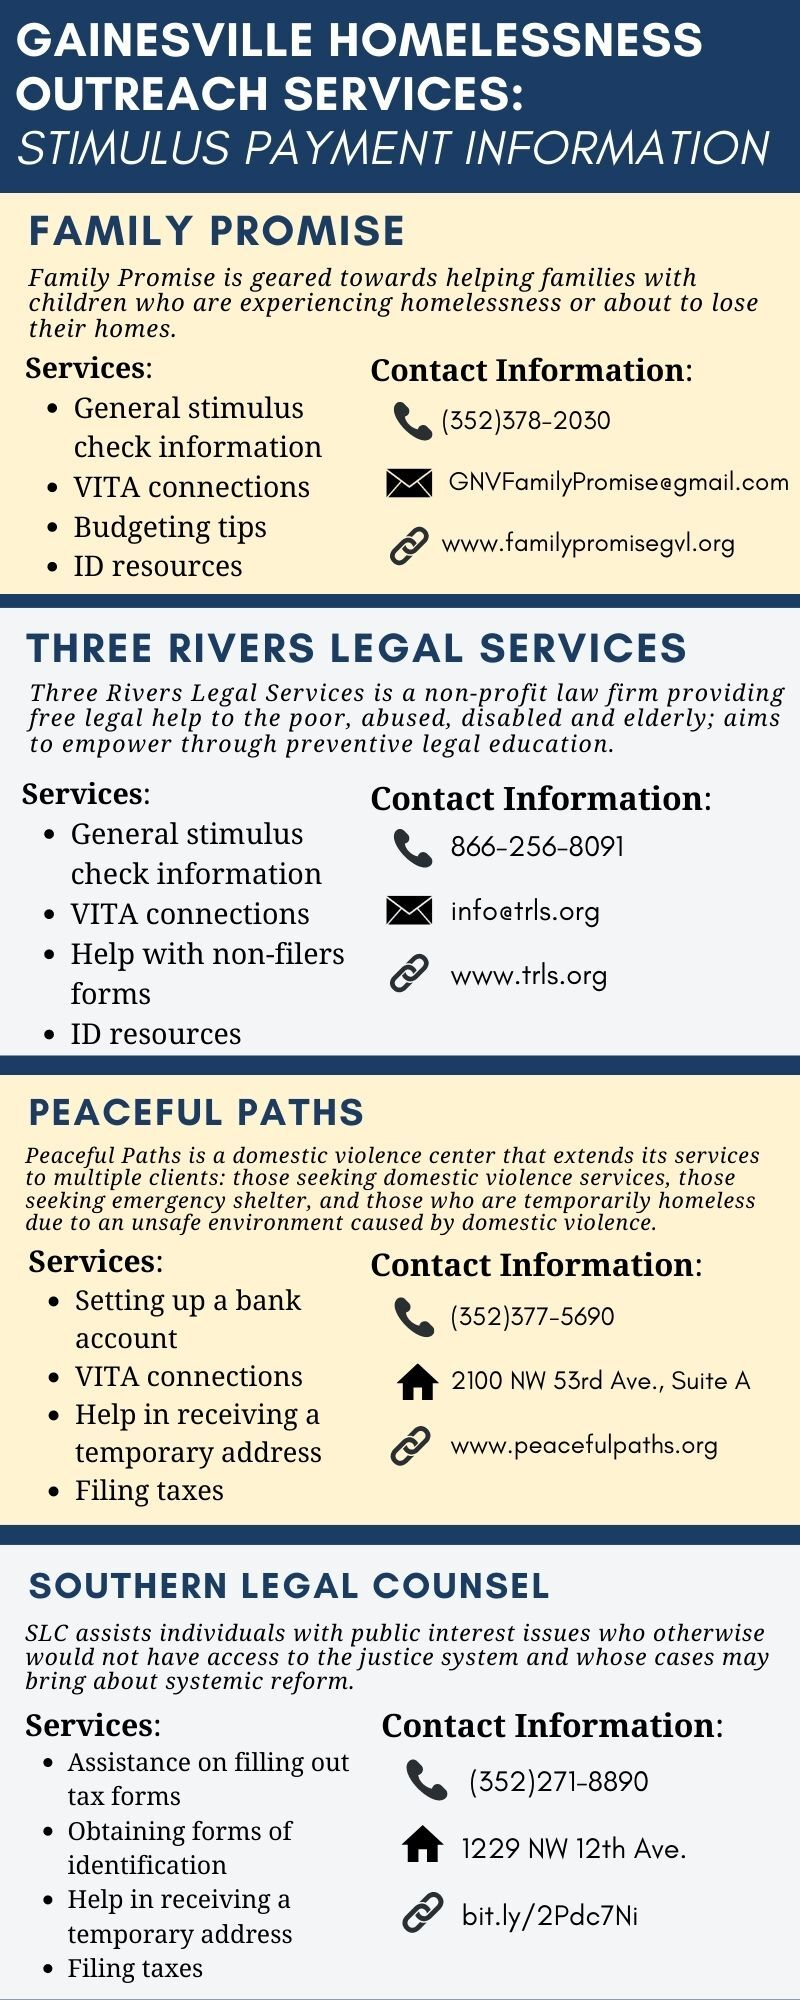 Infographic detailing resources on how people experiencing homelessness can get a stimulus check.